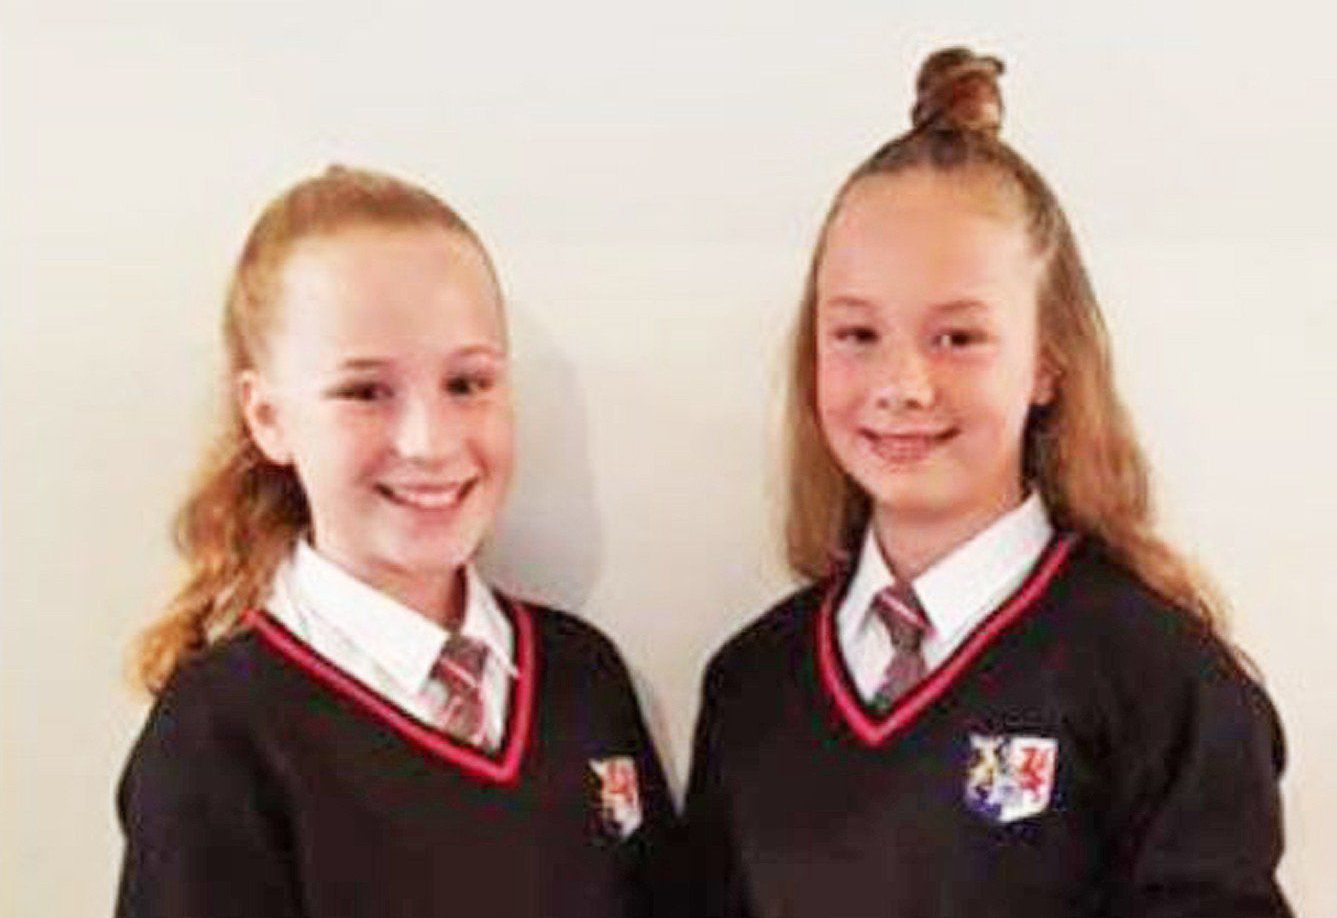 Pic by HotSpot Media - TEENS SCRAWL OFFENSIVE WORDS ACROSS FACE TO MAKE STAND AGAINST BULLYING - IN PIC - (L-R) Halli-Marie, 13, with cousin Charli-jai, 13, from Cardiff - A mum -of- four has shared a shocking video online showing the devastating impact bullying has had on her teenage daughter and niece. Donna Wilson, 35, from Cardiff, said that daughter Halli-Marie, and niece Charli-jai, both 13, wanted to raise awareness of bullying. The girls, who attend Cantonian High School in Cardiff, scrawled dozens of offensive words that bullies have called them all over their face and chest, including; 'slag', 'bitch' and 'anorexic', to highlight the issue. Donna, who works in a cafe, shared the video, which sees the girls candidly discuss bullying and encouraged people to repost it to show the negative impact it has on school children. The controversial footage has since racked up over 30,000 views and 600 shares. SEE HOTSPOT MEDIA COPY 0121 551 1004